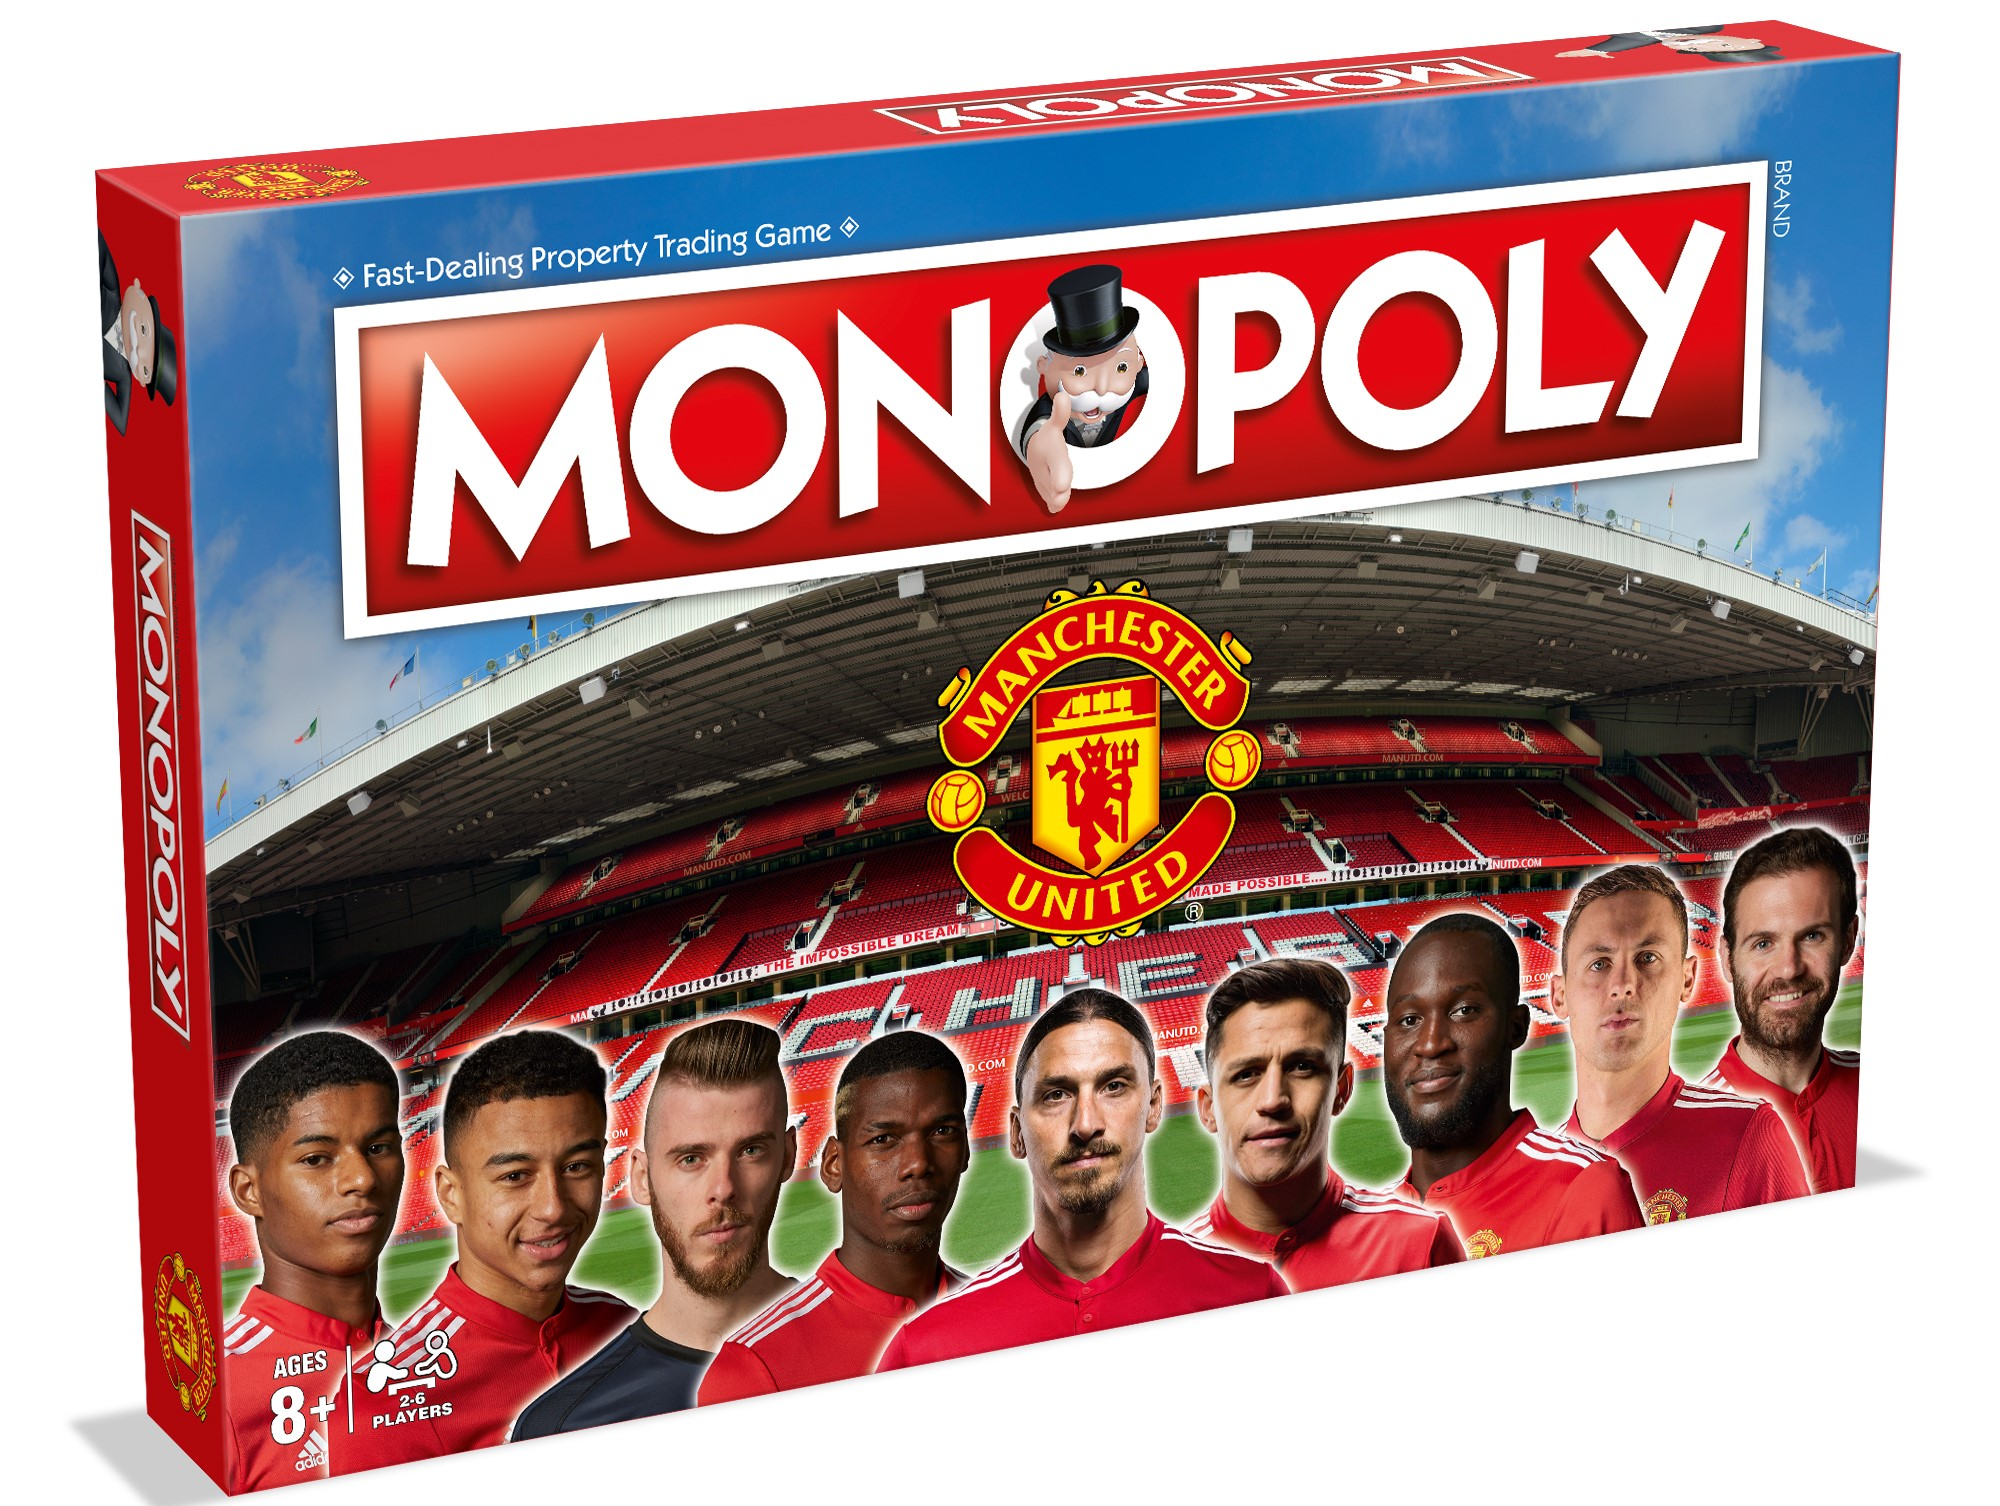 Monopoly - Manchester United 2017/18